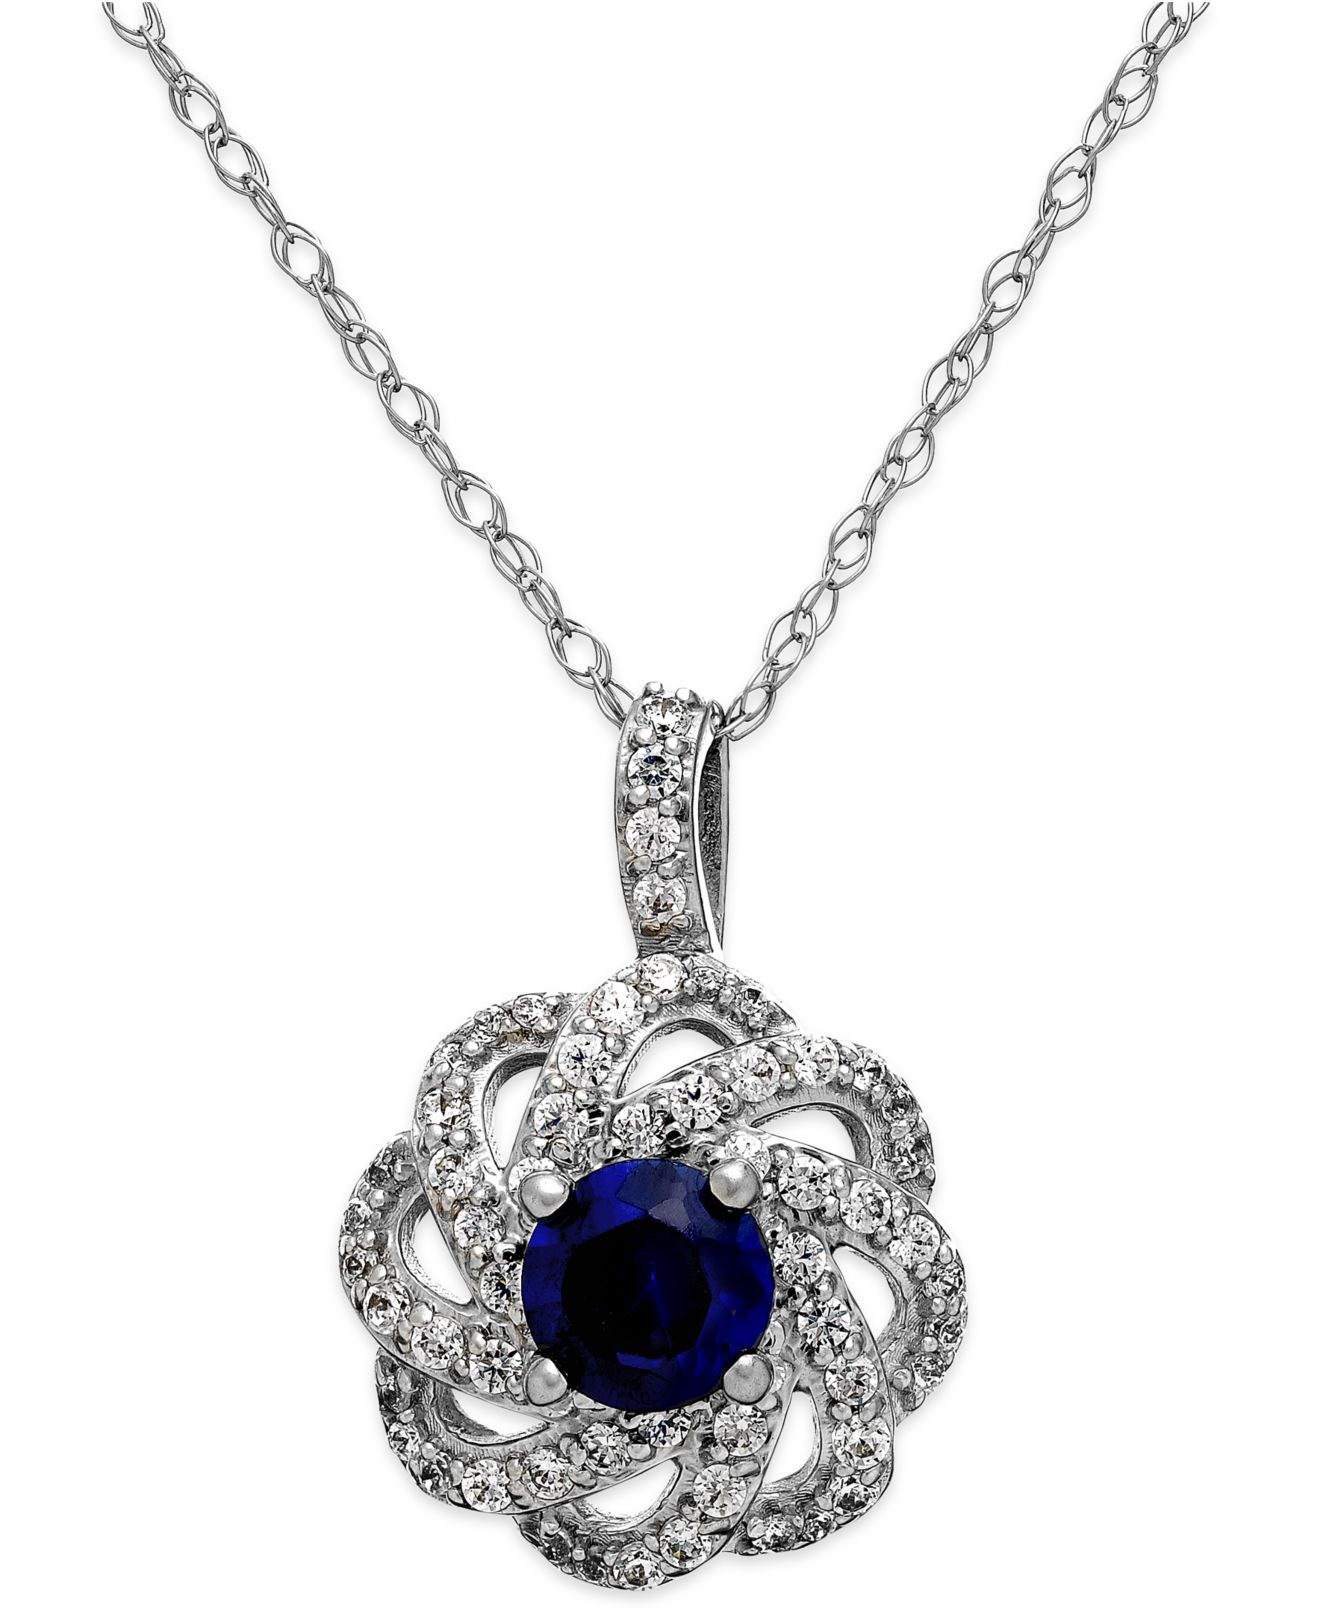 macys jewelry sale macy s sapphire 5 8 ct t w and 1 3 ct t w 1048